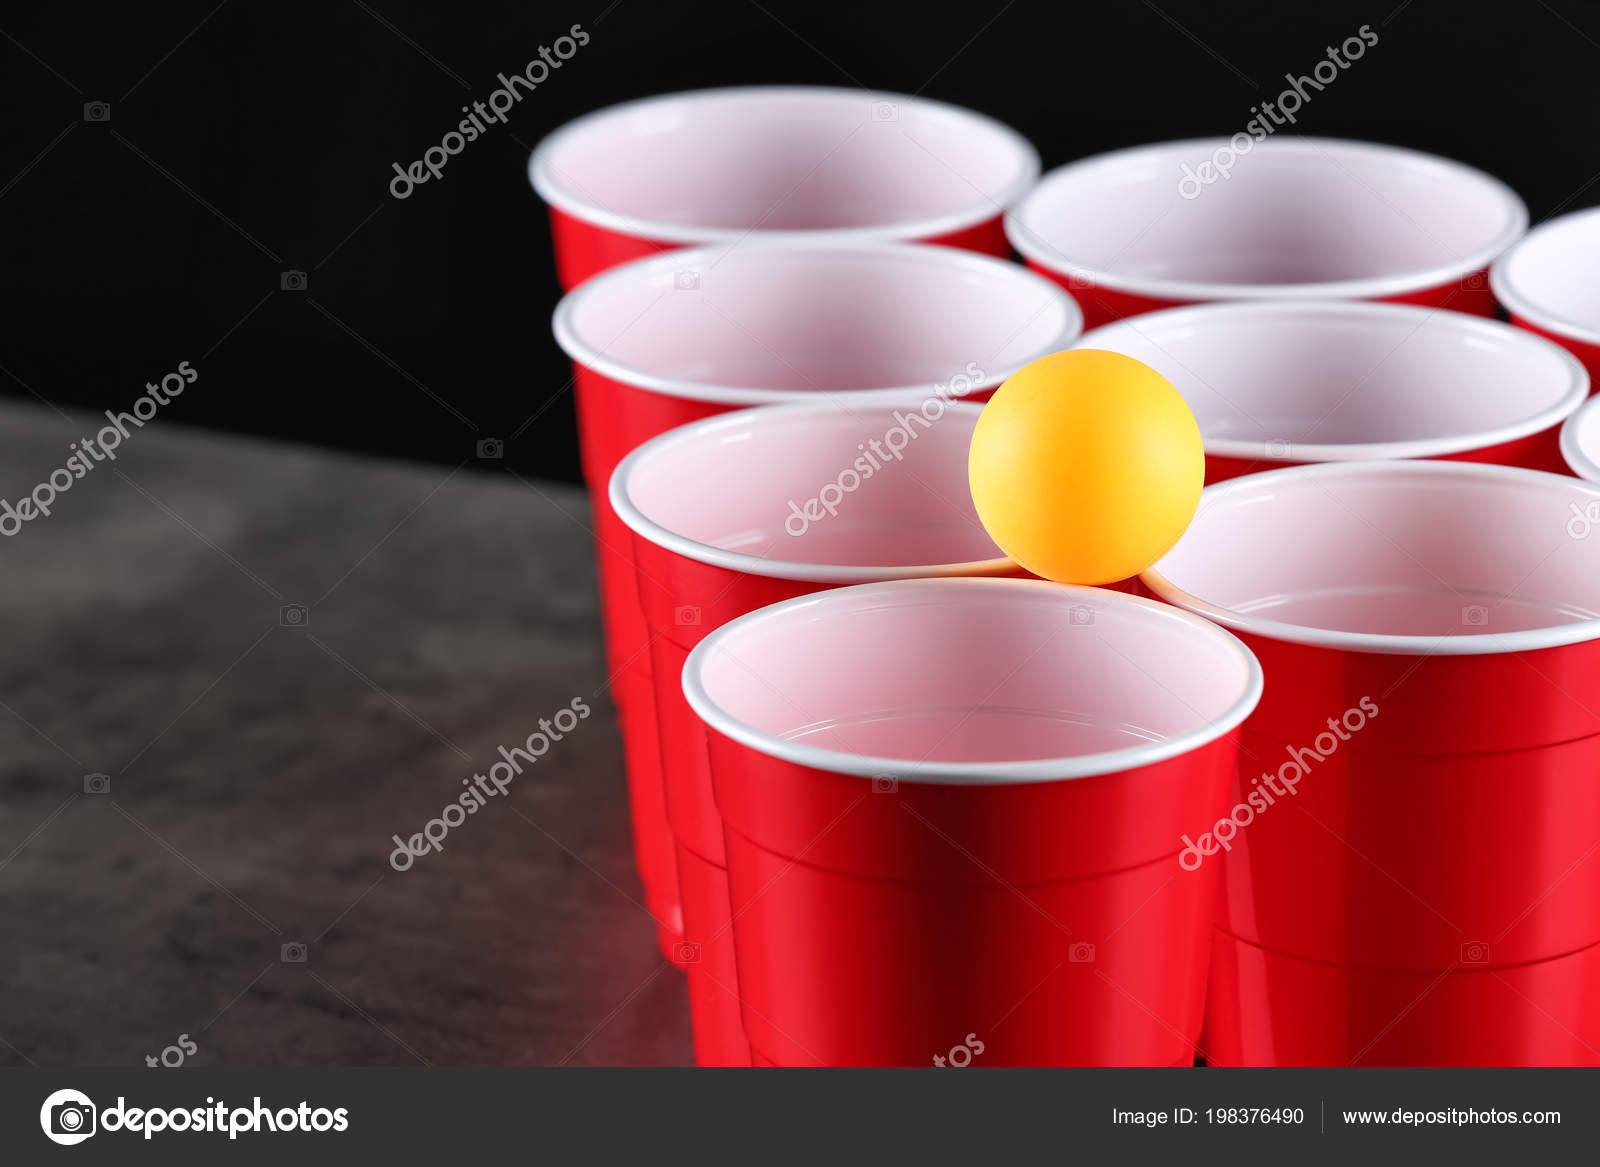 Bekers bal voor bier pong tafel close u stockfoto serezniy